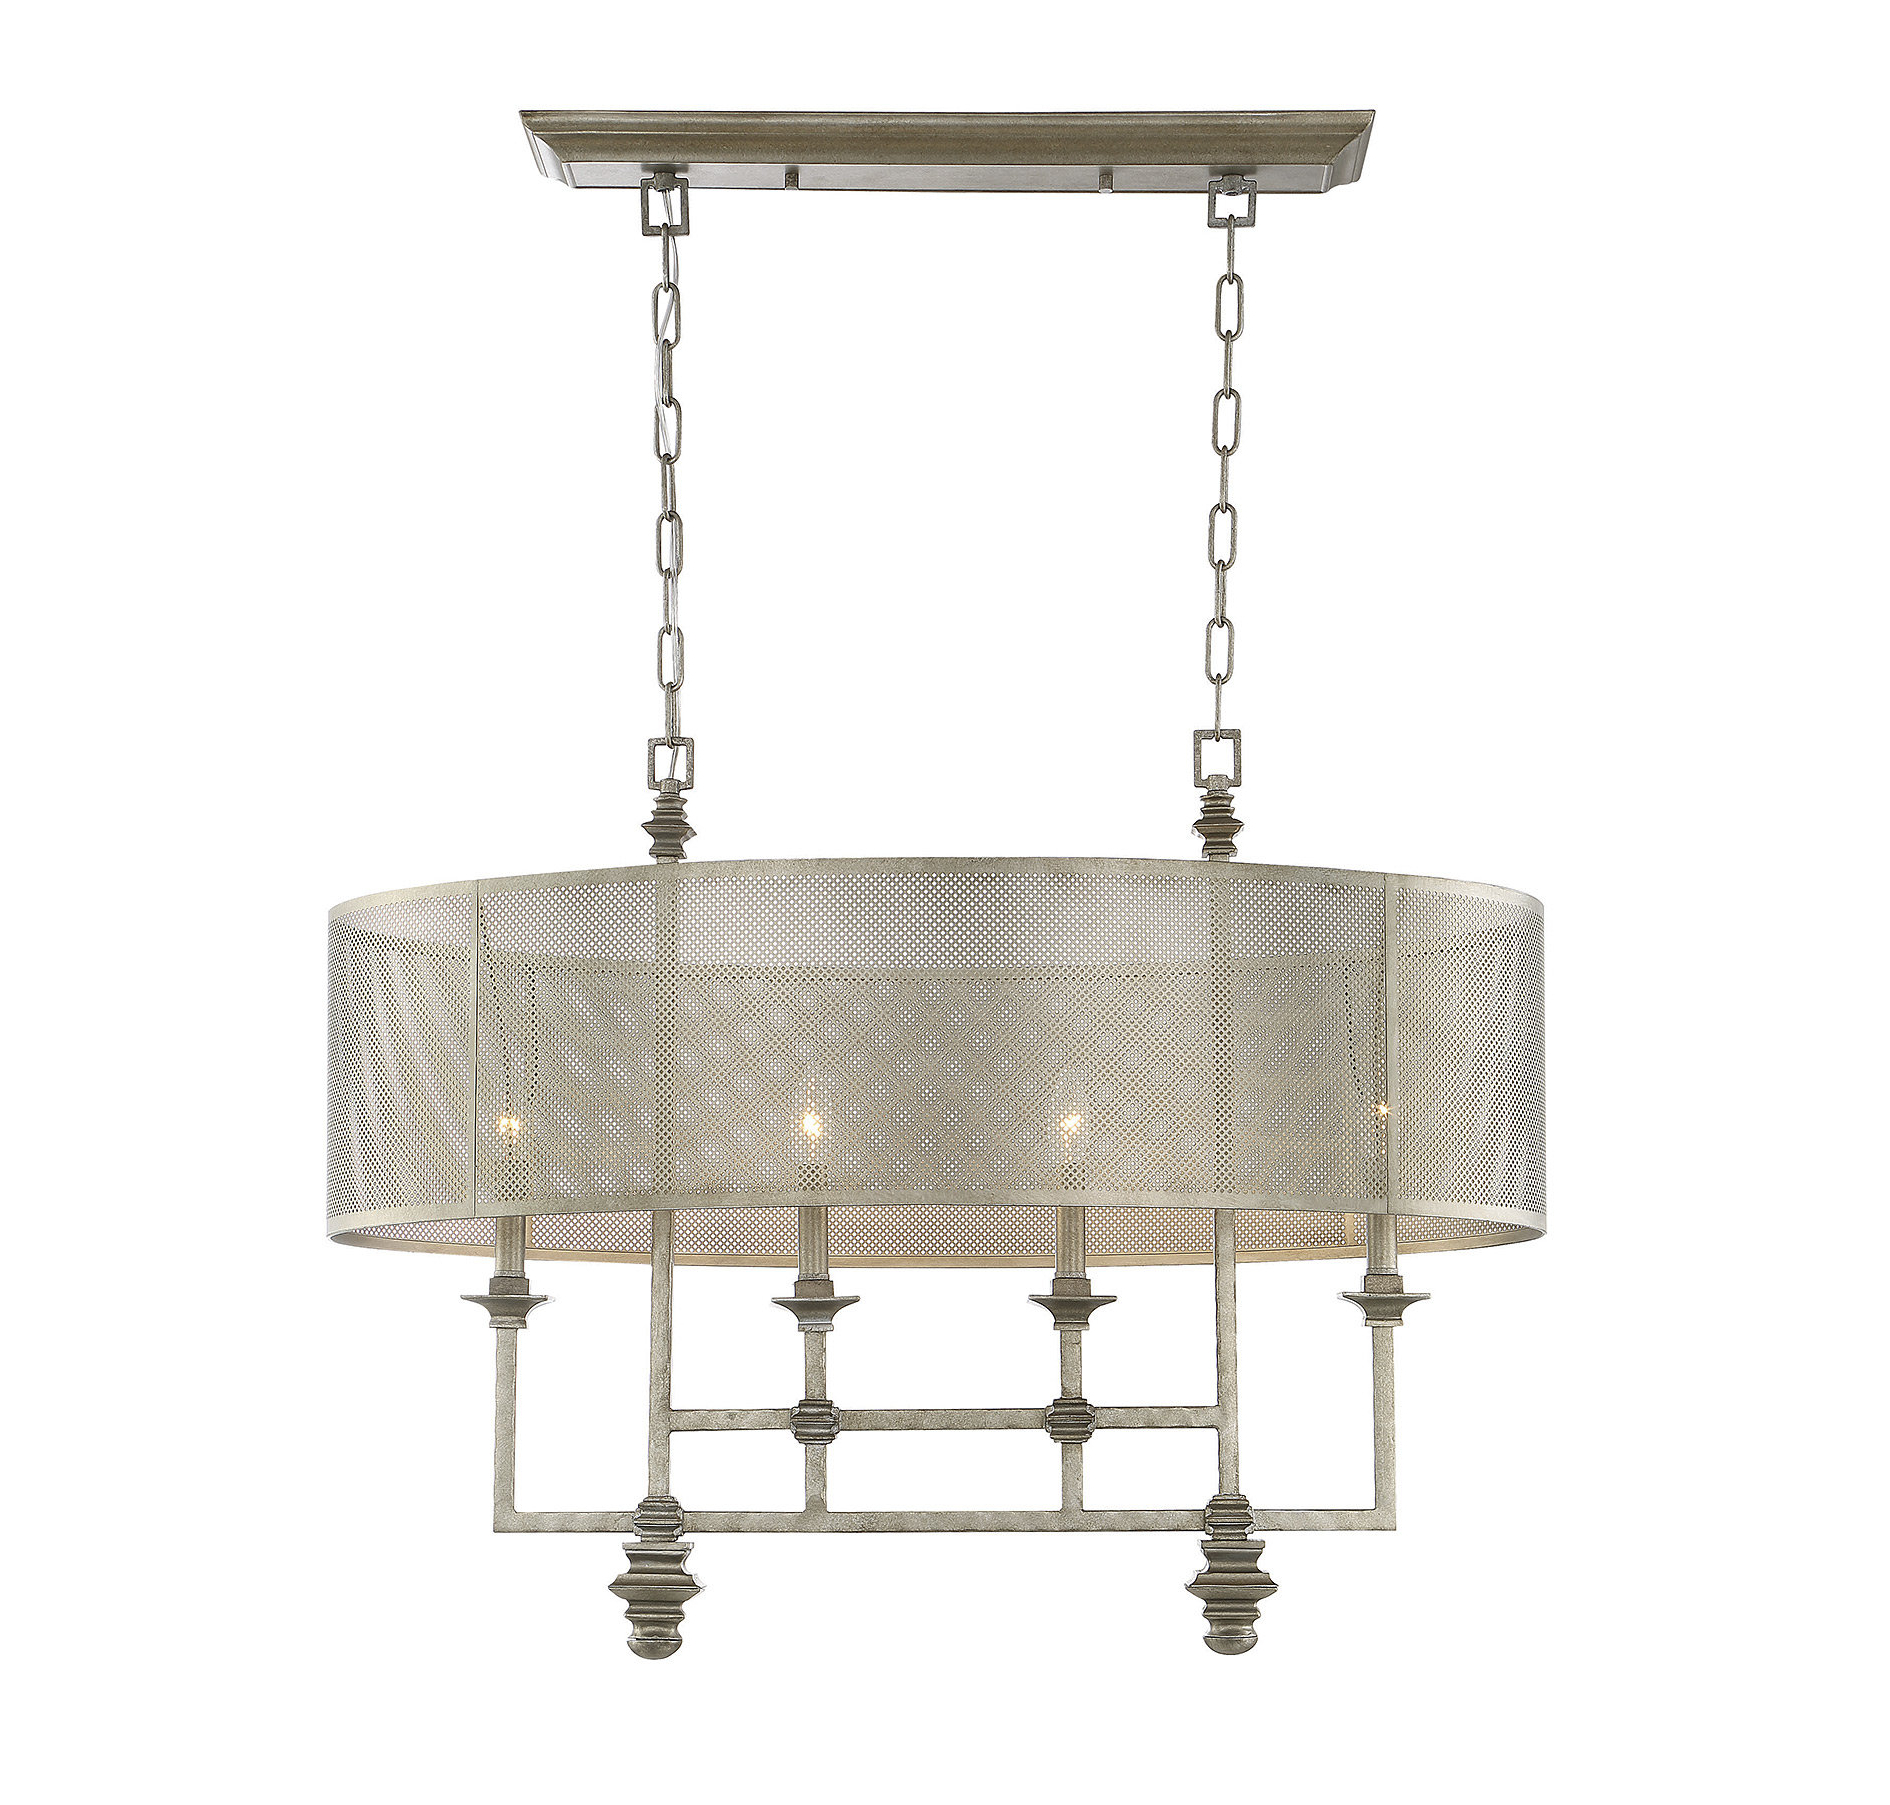 Lindsey 4 Light Drum Chandeliers Intended For Most Recently Released Freeburg 4 Light Chandelier (View 10 of 20)